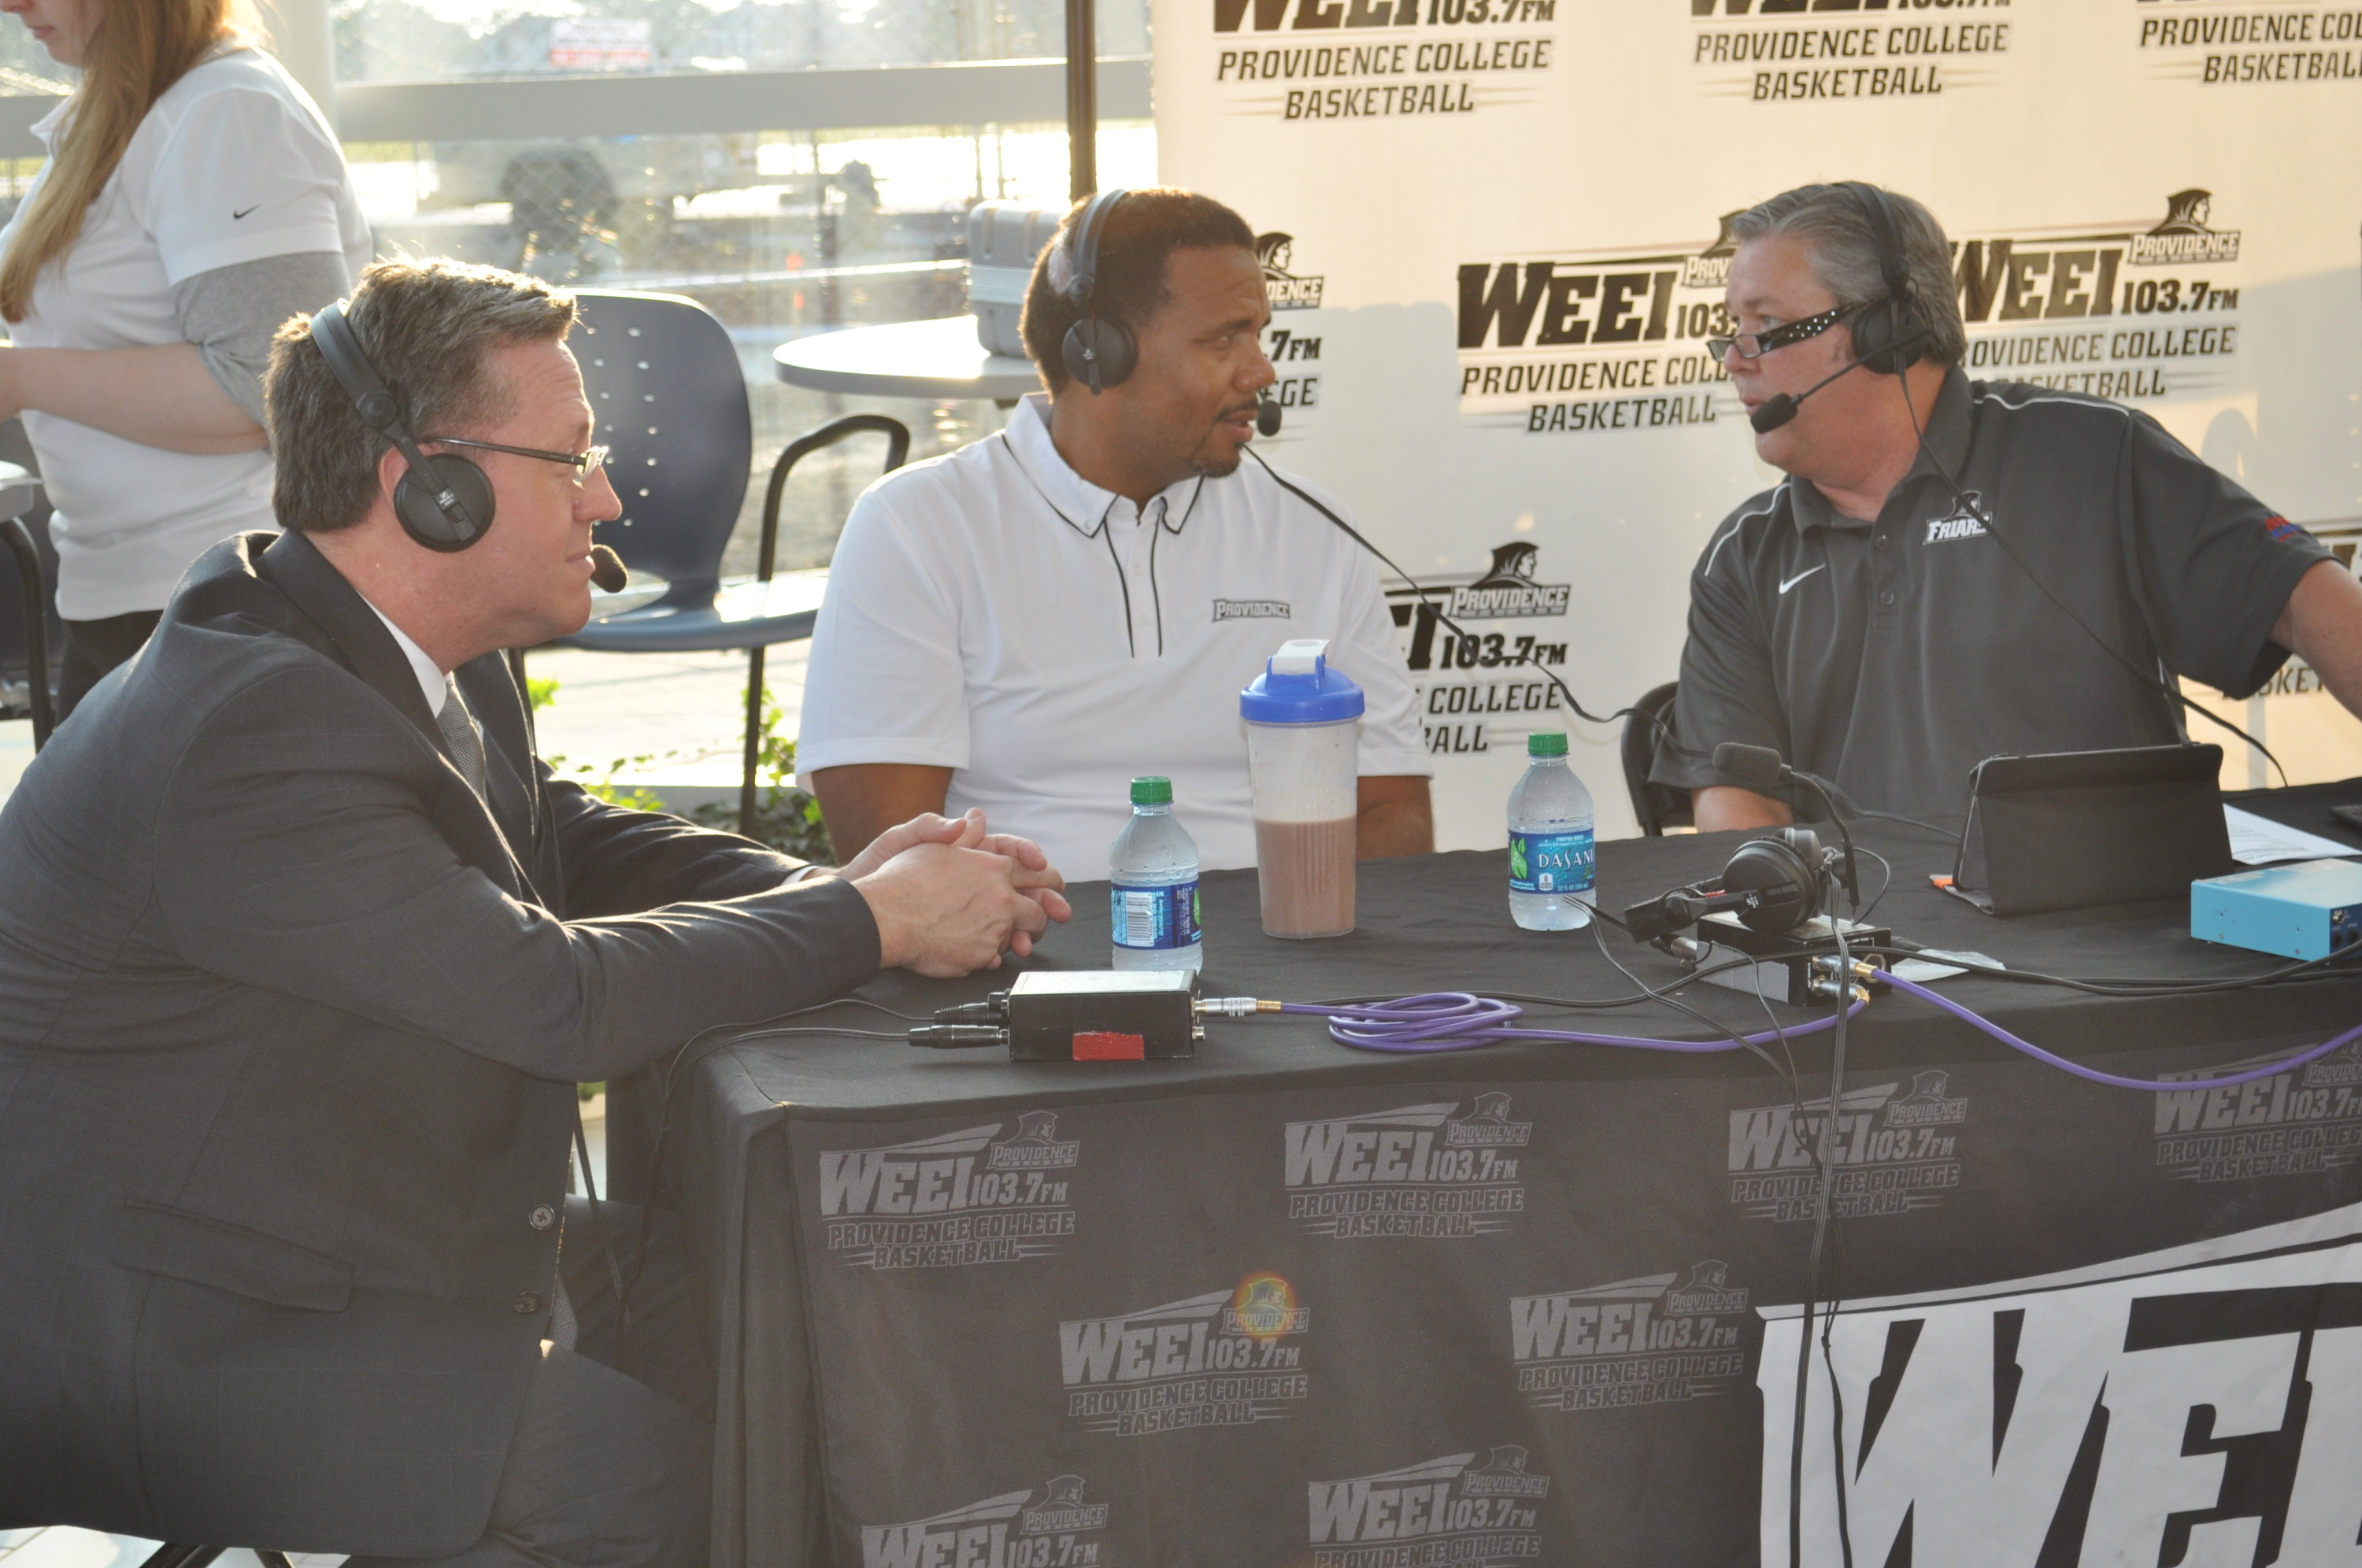 Ed Cooley Radio Show To Air Live From Audi Warwick Wednesday - Audi warwick